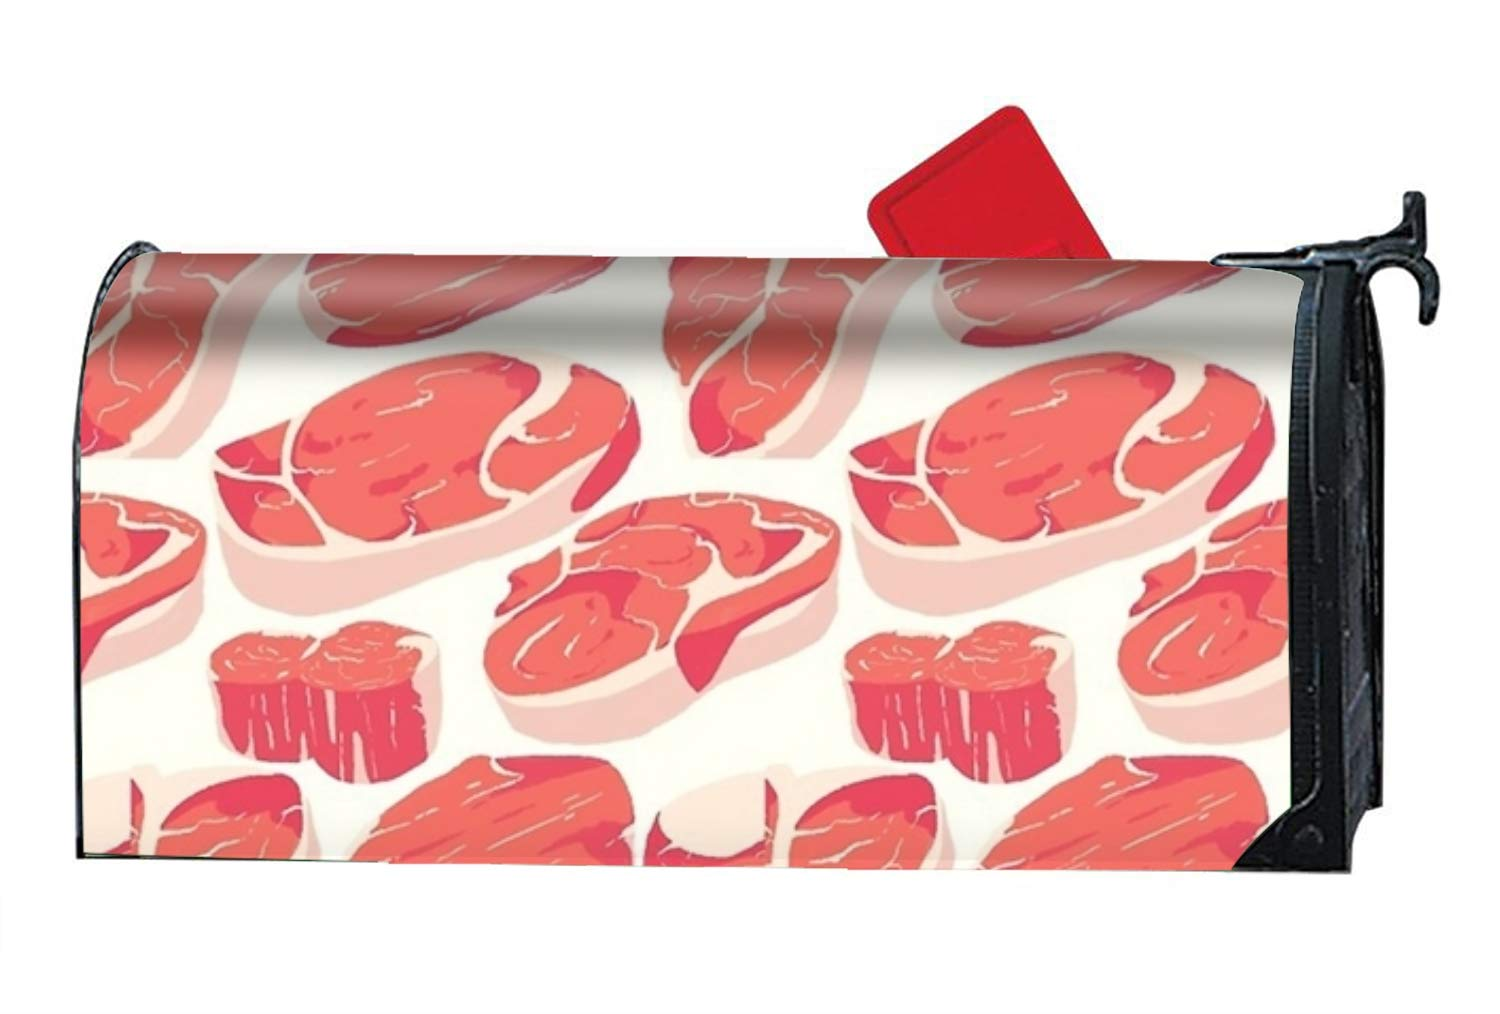 BABBY Magnetic Mailbox Cover - Seamless Meat Themed, Decorative Mailbox Wrap for Standard Size, Customized Design ¨C Multicolor, 9x21 inches